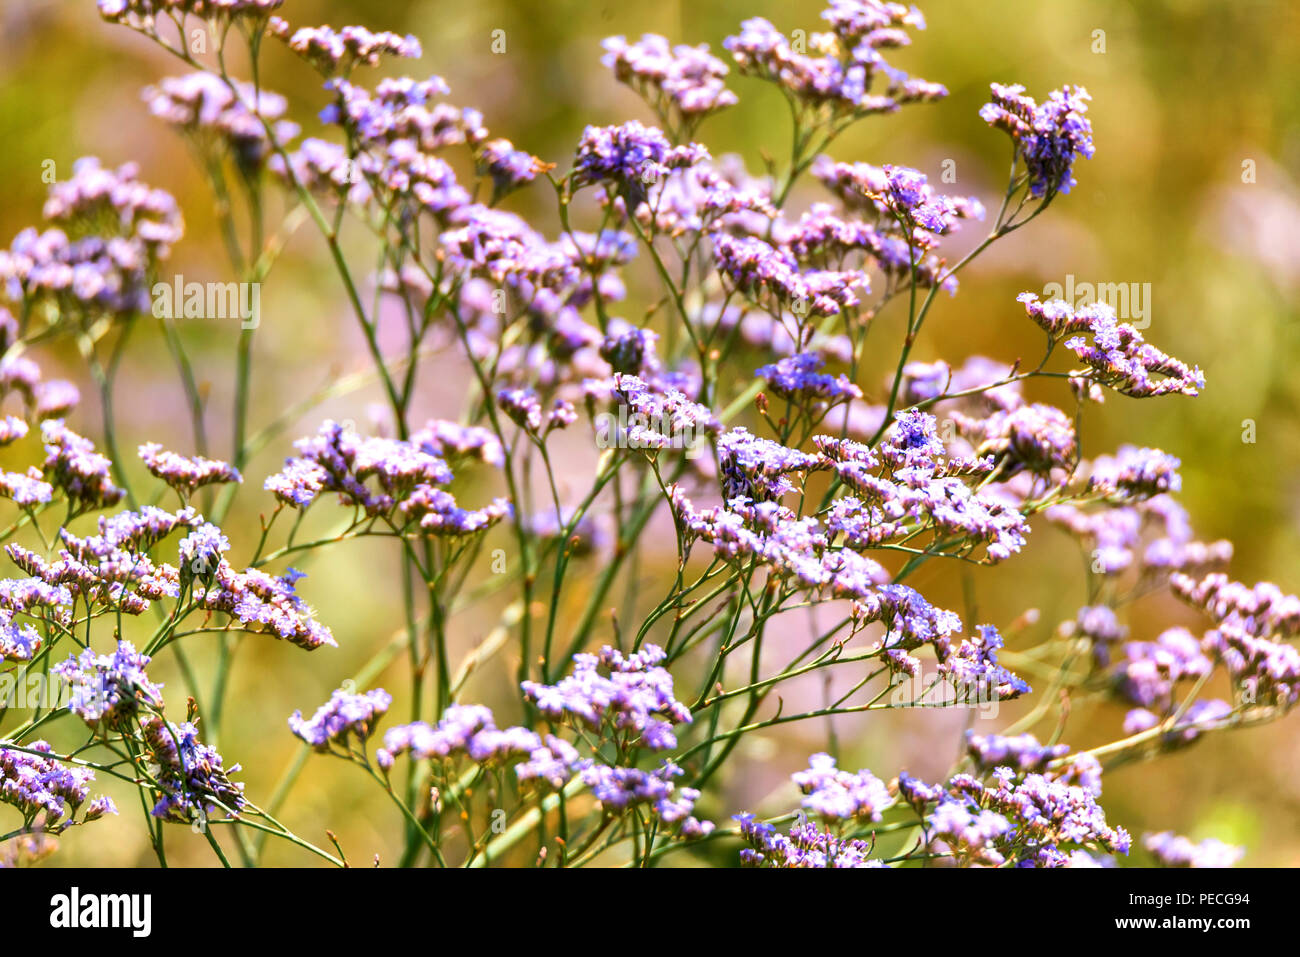 Limonium flower in bloom in garden close - Stock Image